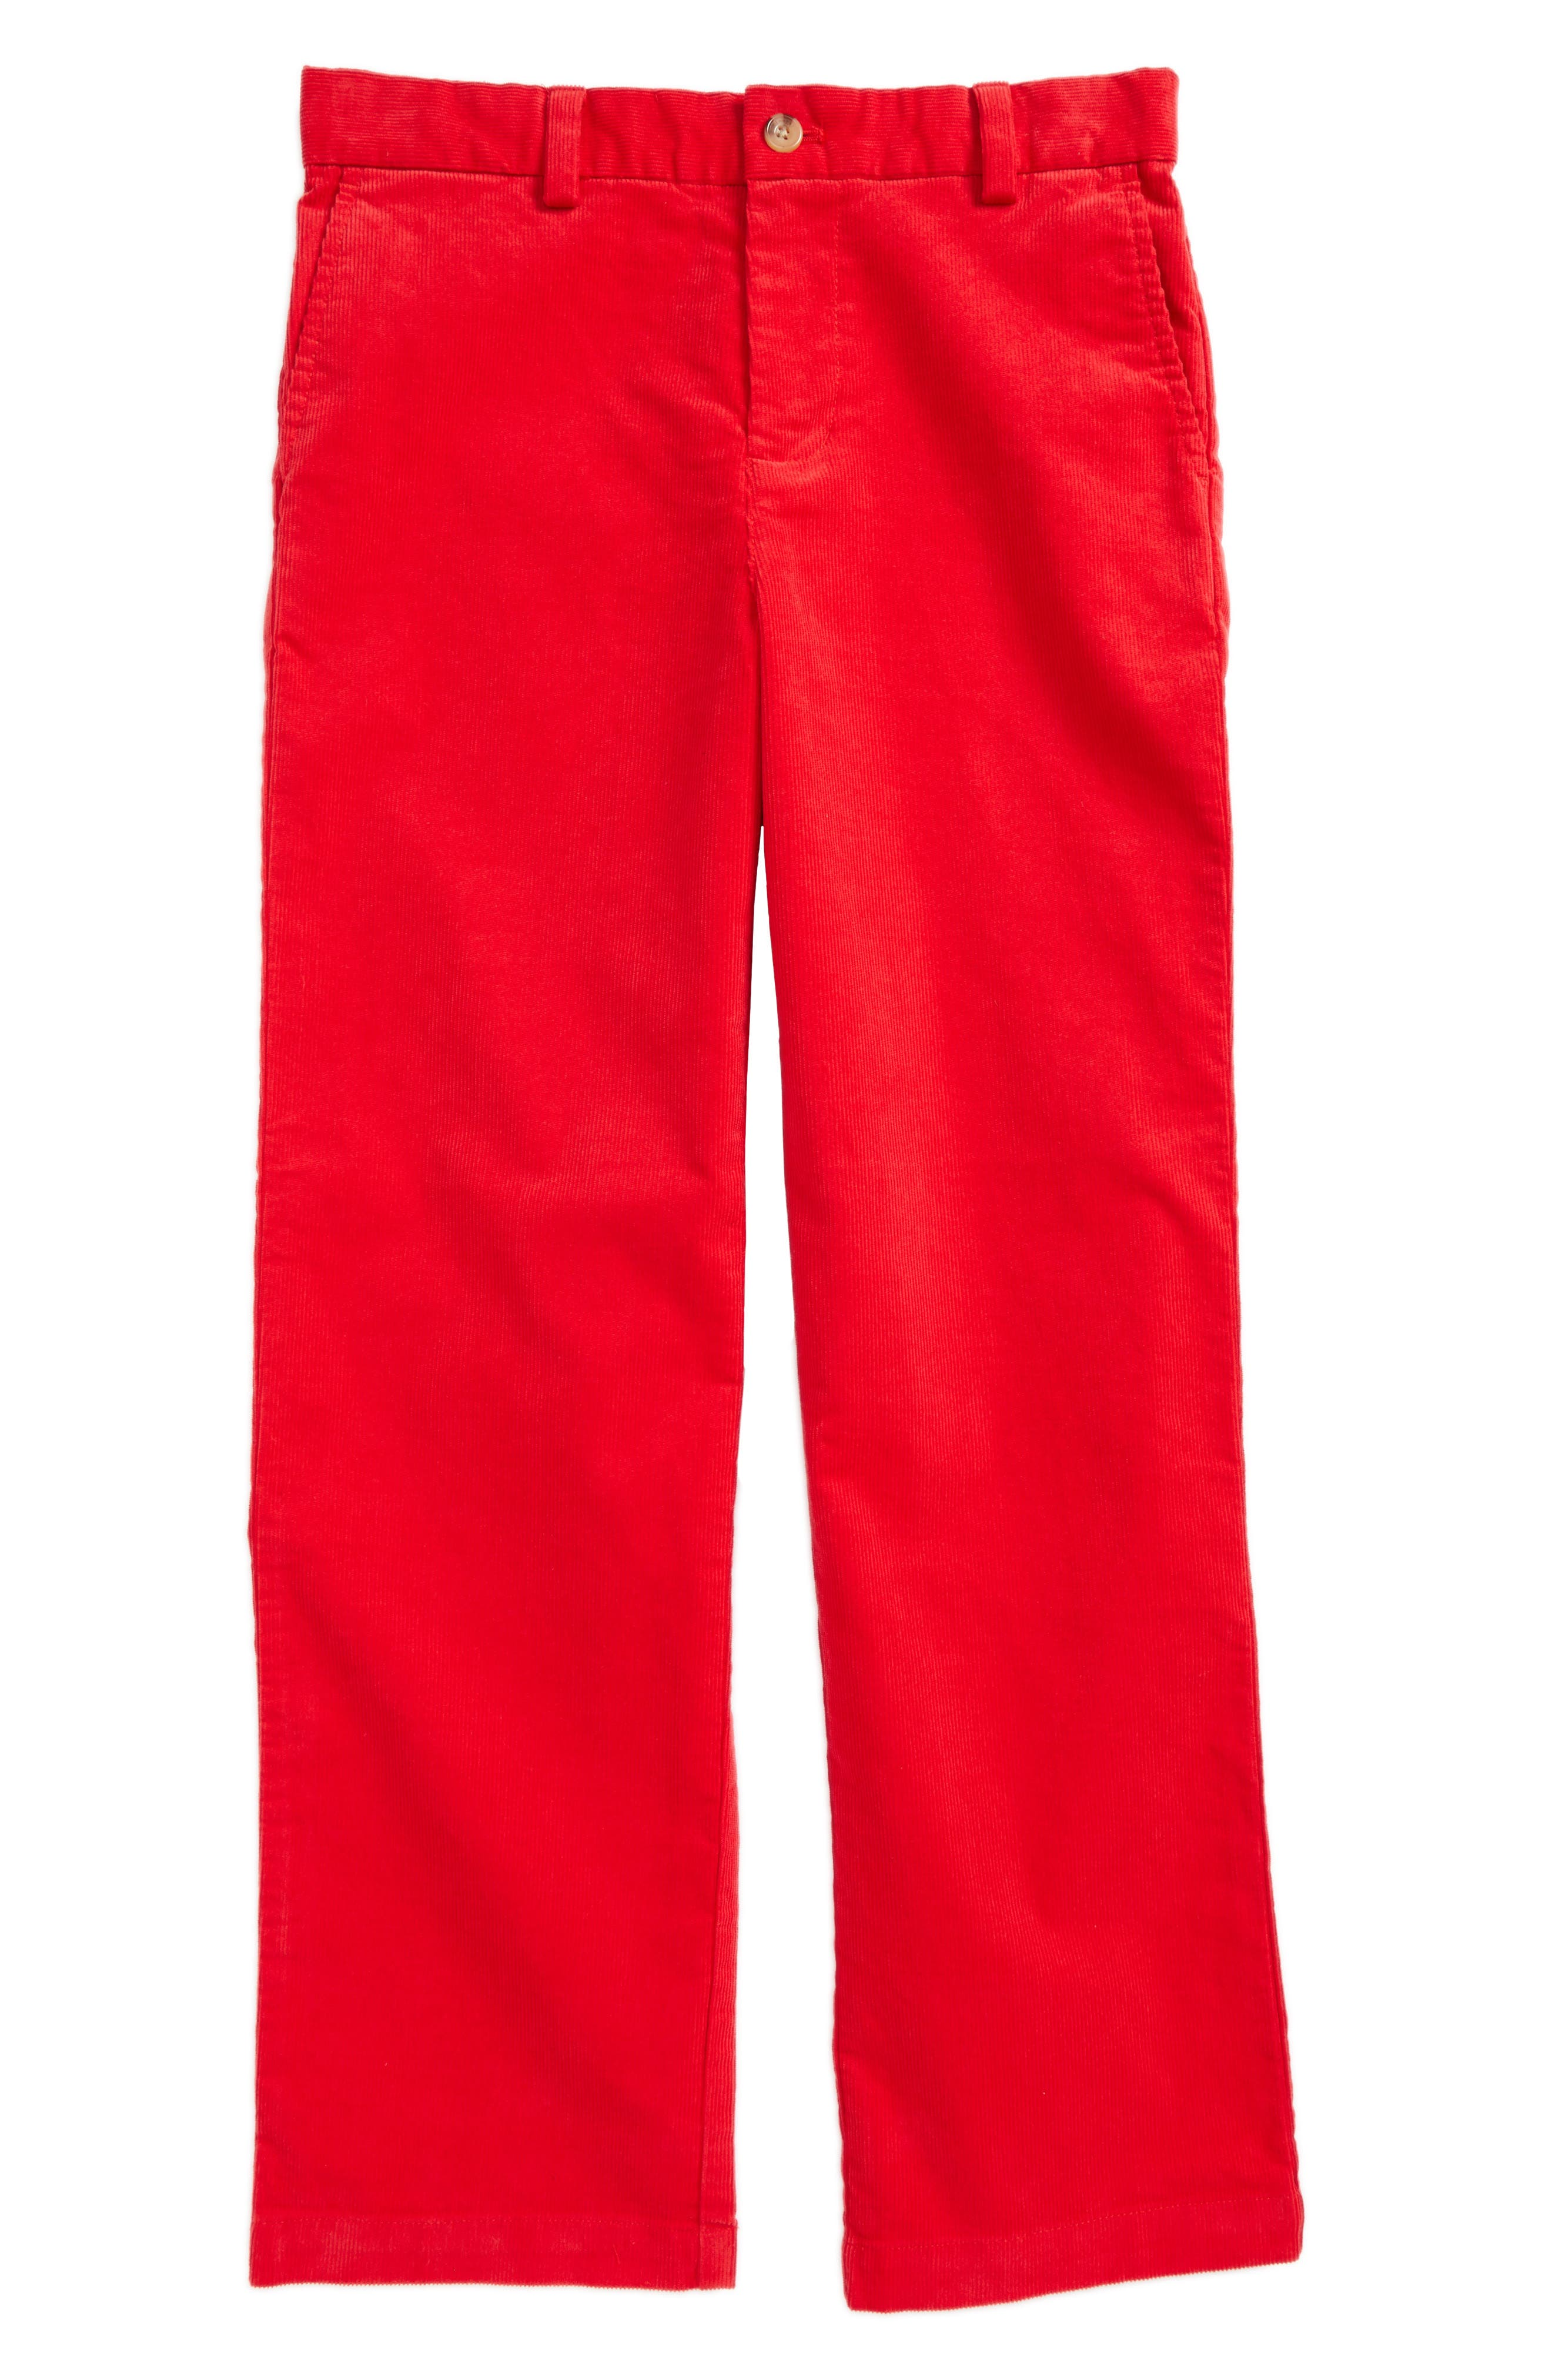 Breaker Corduroy Pants,                             Main thumbnail 3, color,